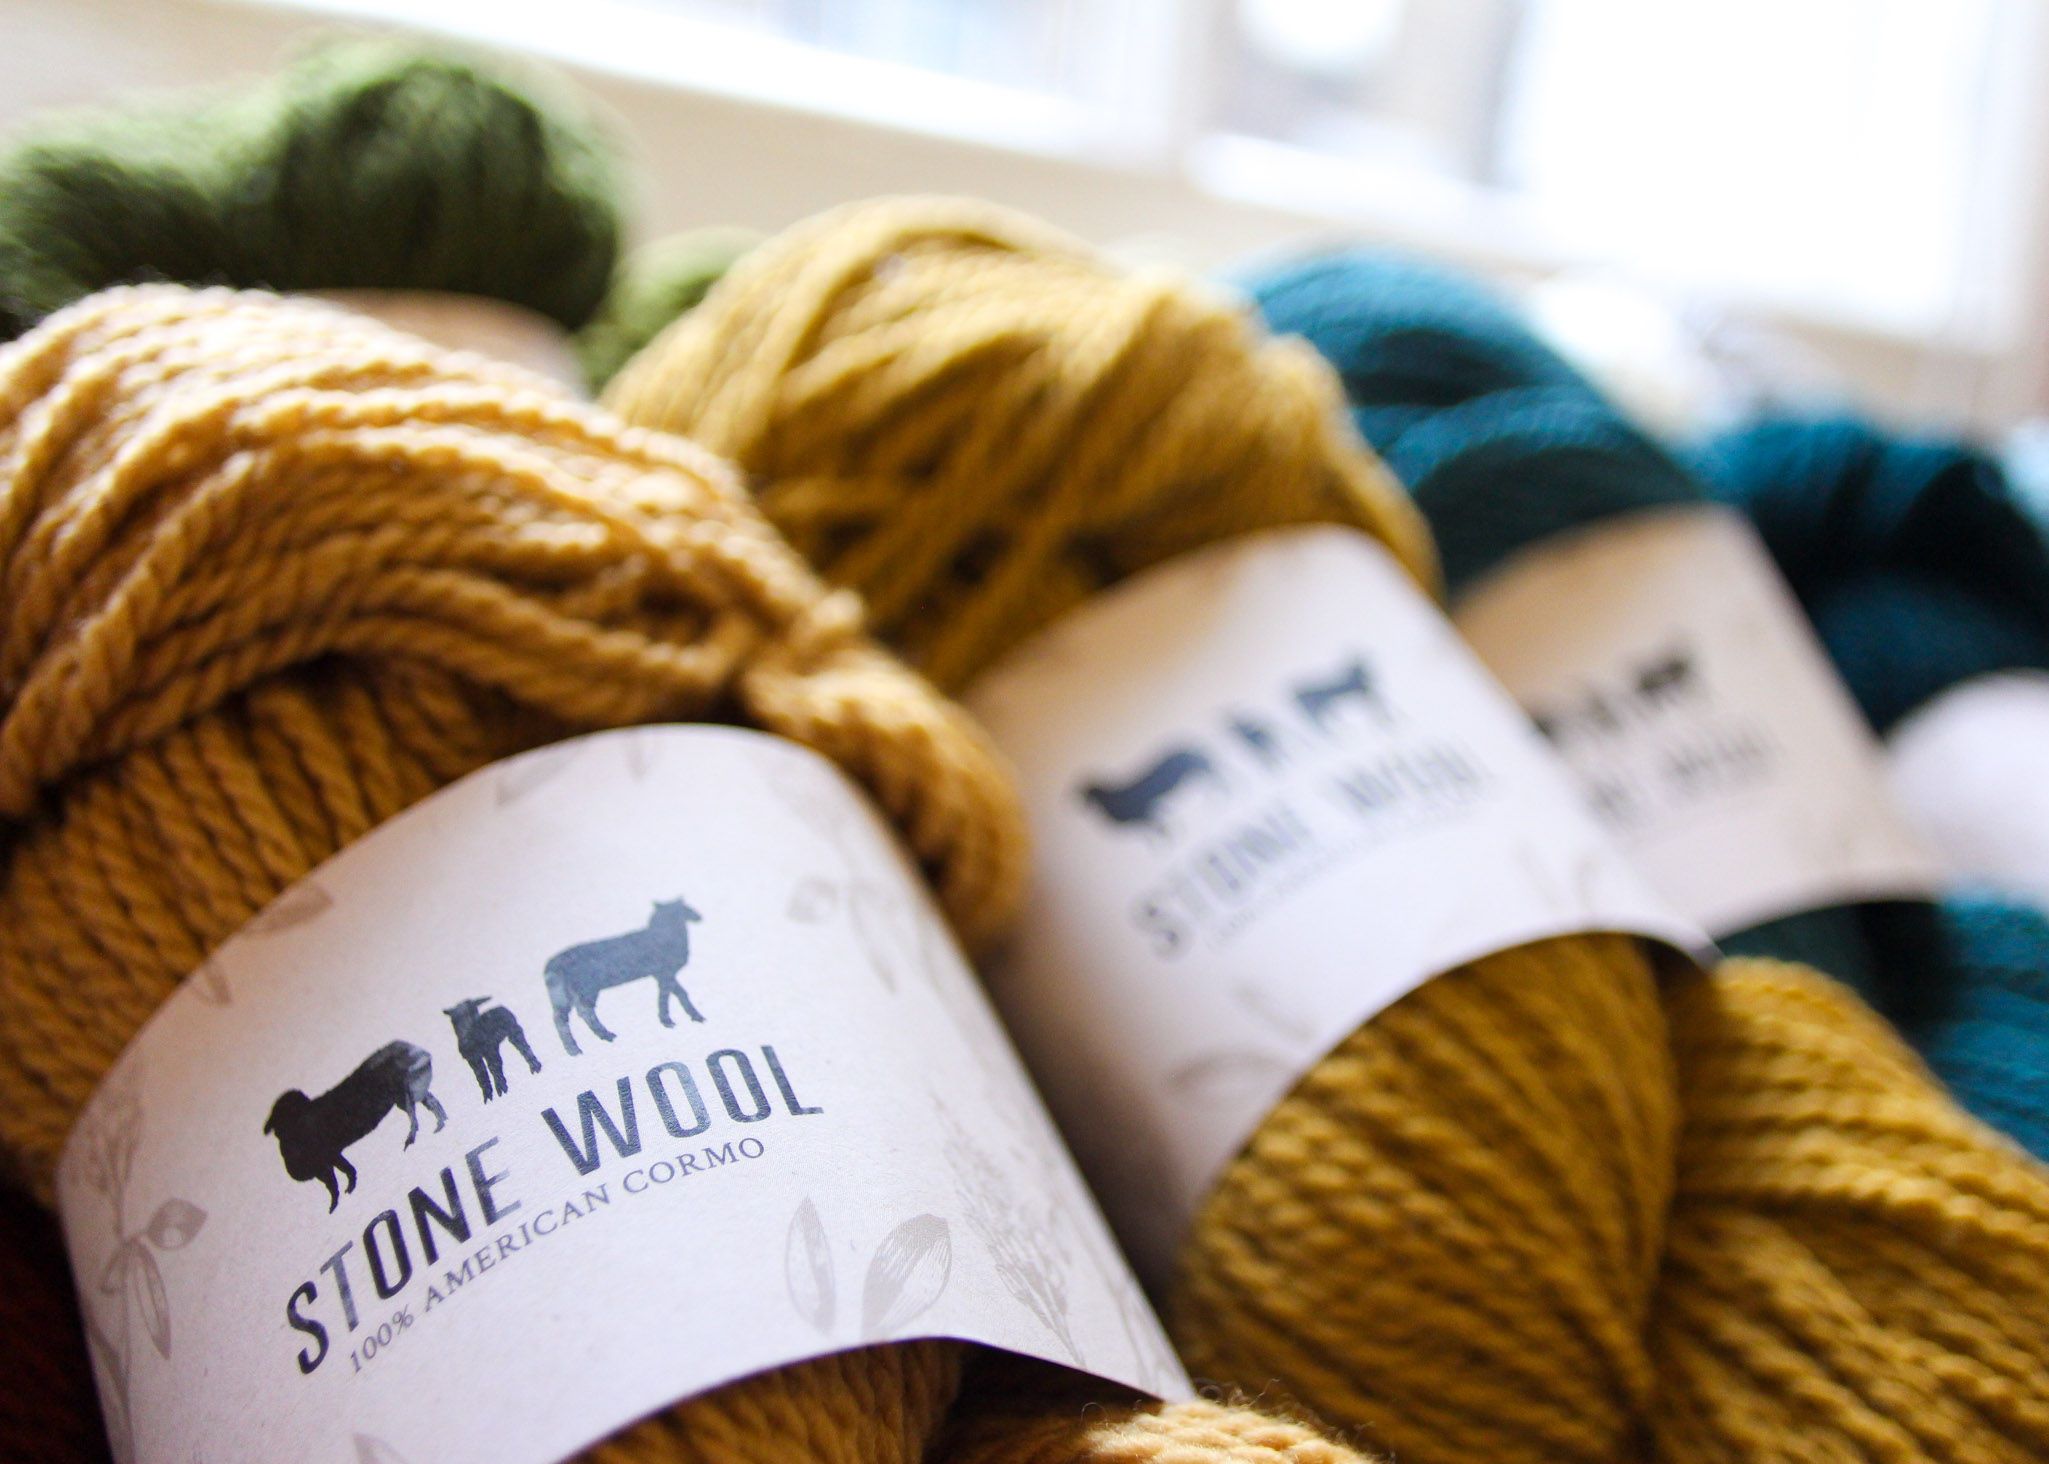 Introducing: Stone Wool